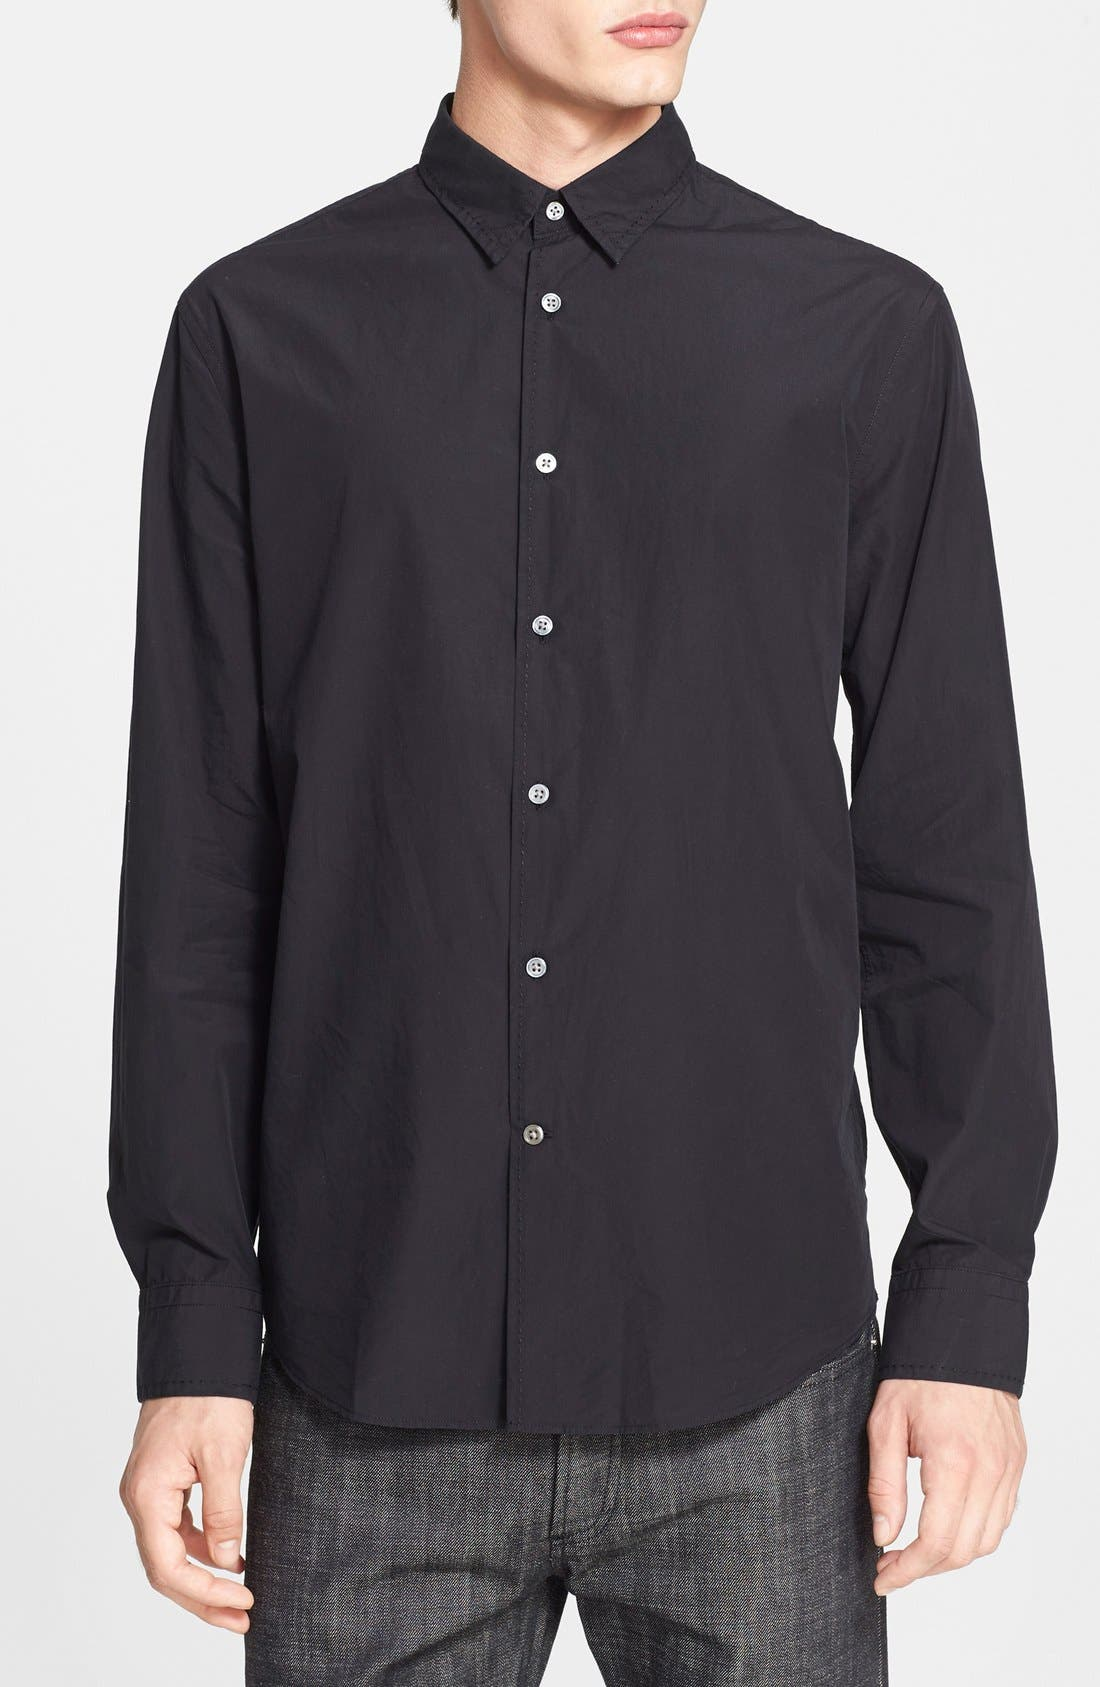 Main Image - John Varvatos Collection Extra Trim Fit Sport Shirt